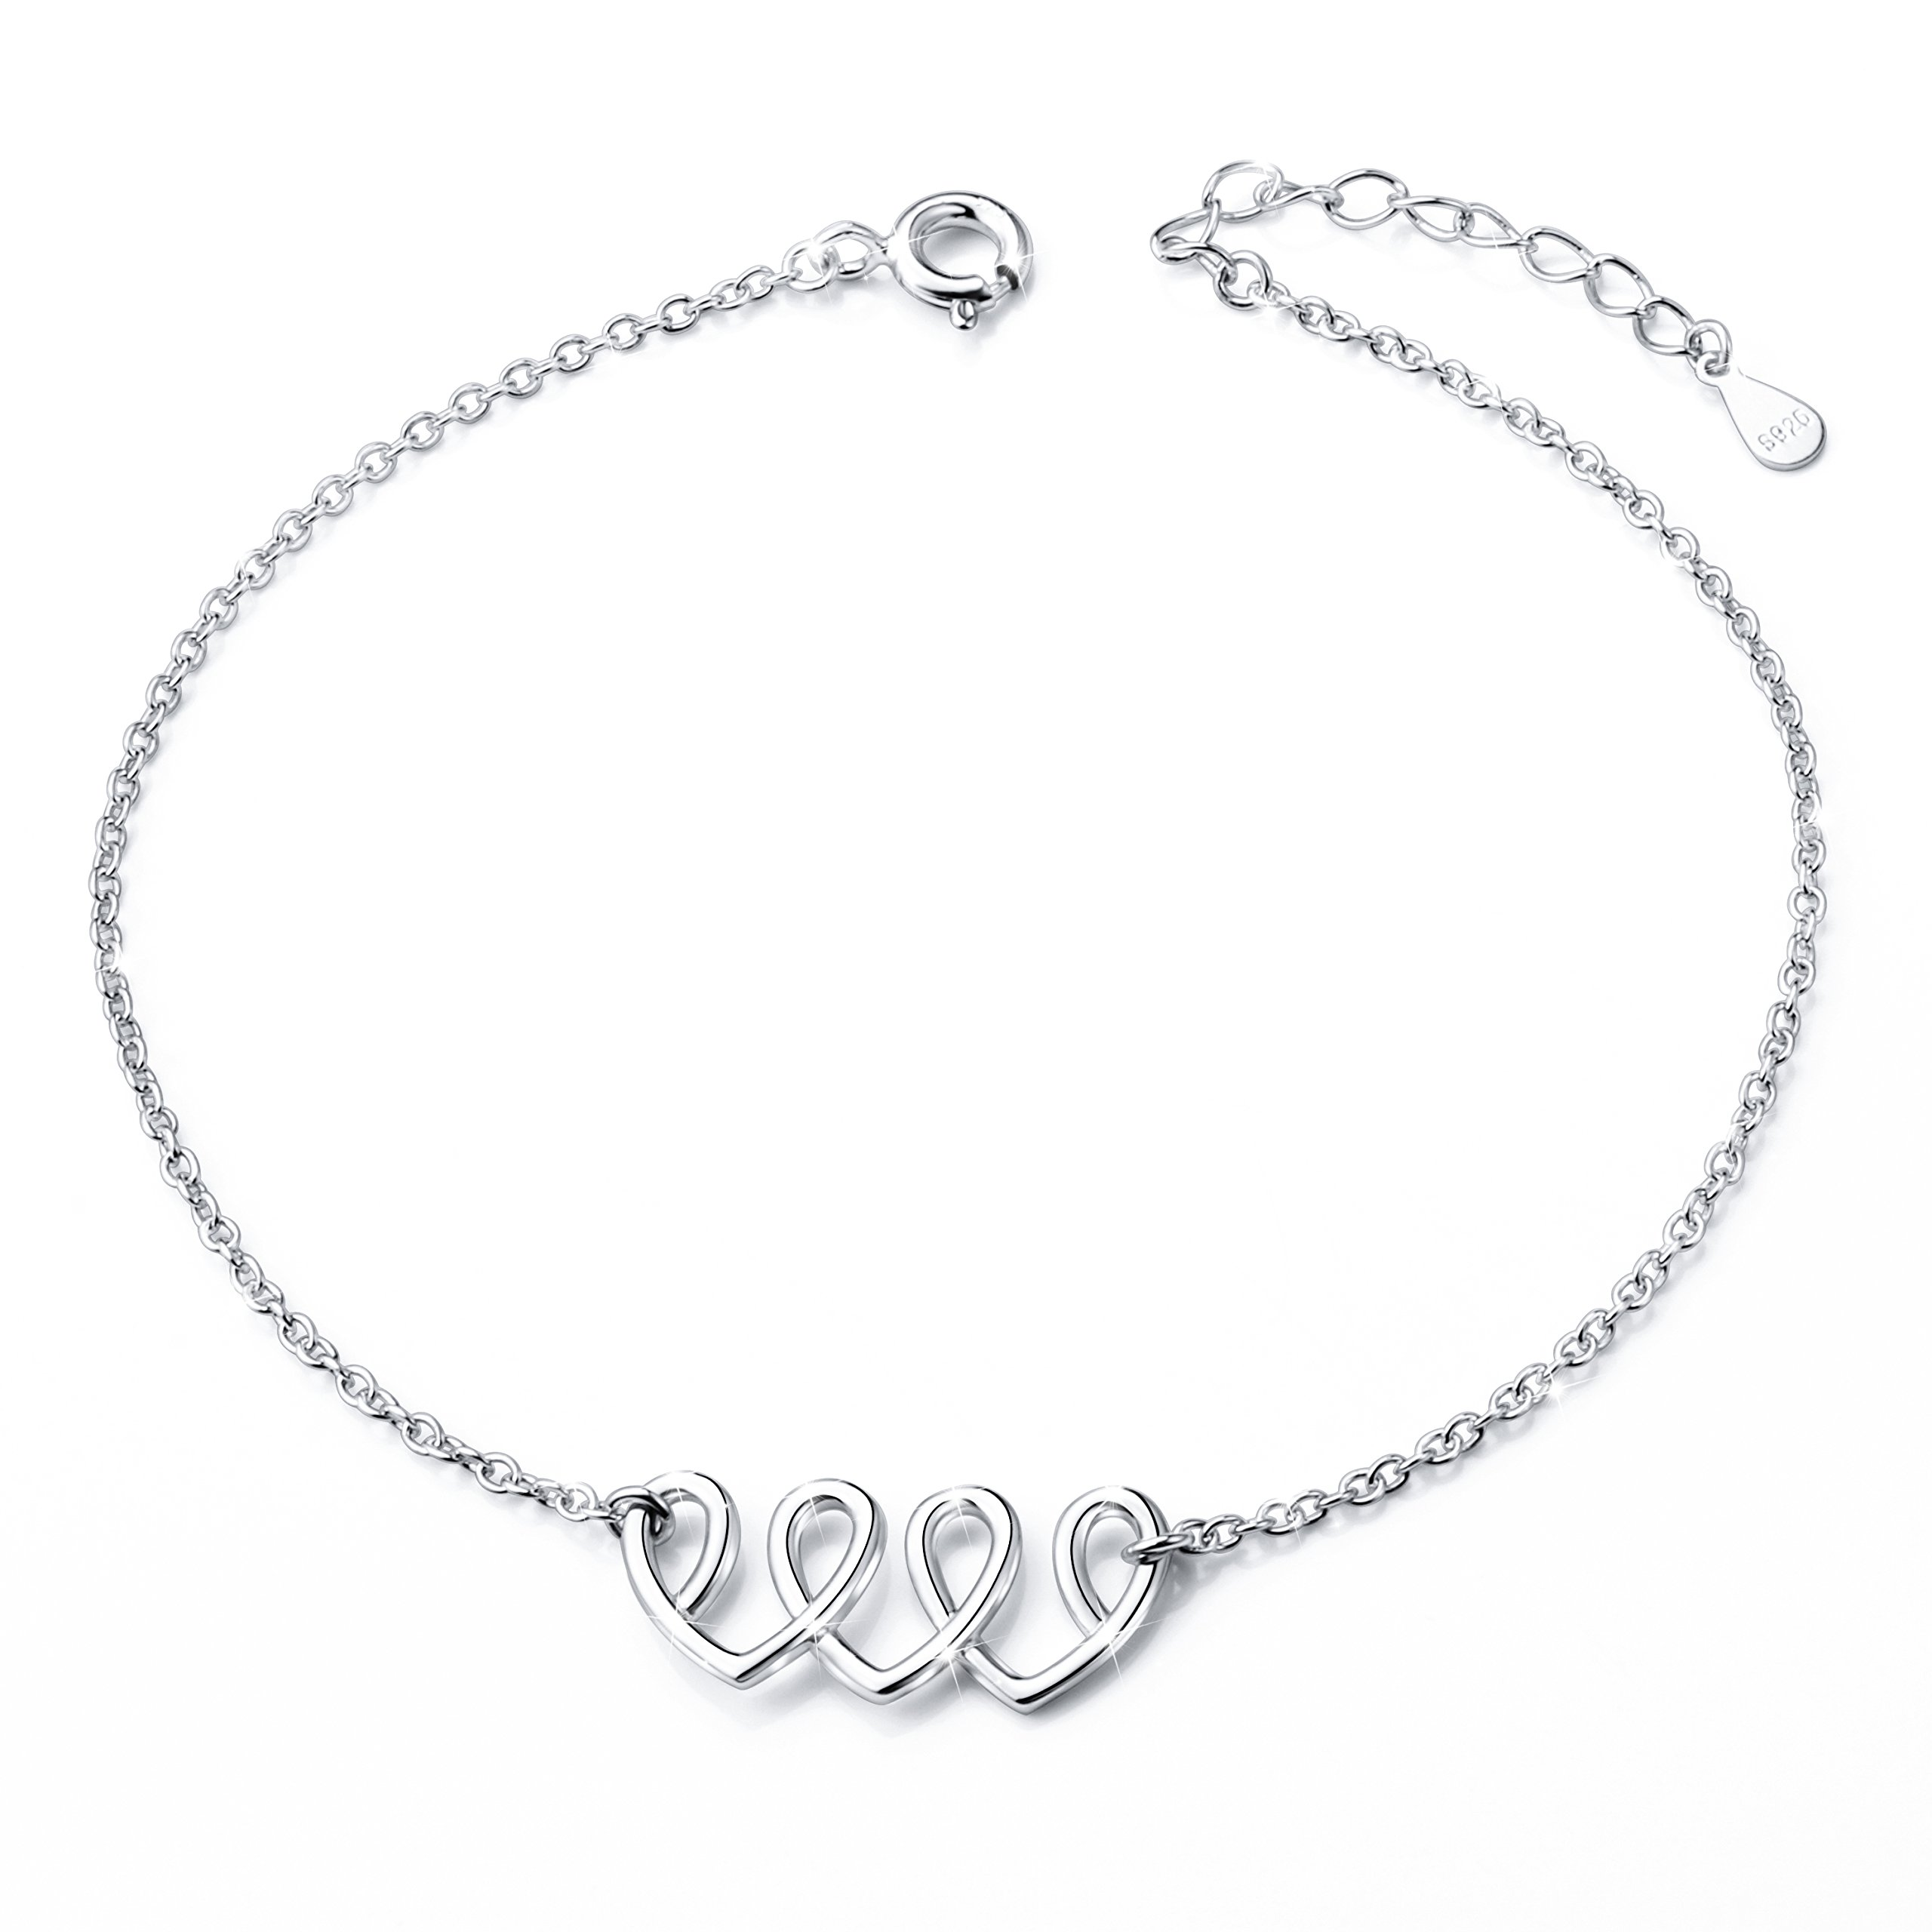 Heart Anklet for Women S925 Sterling Silver Adjustable Foot Ankle bracelet 10 Inch